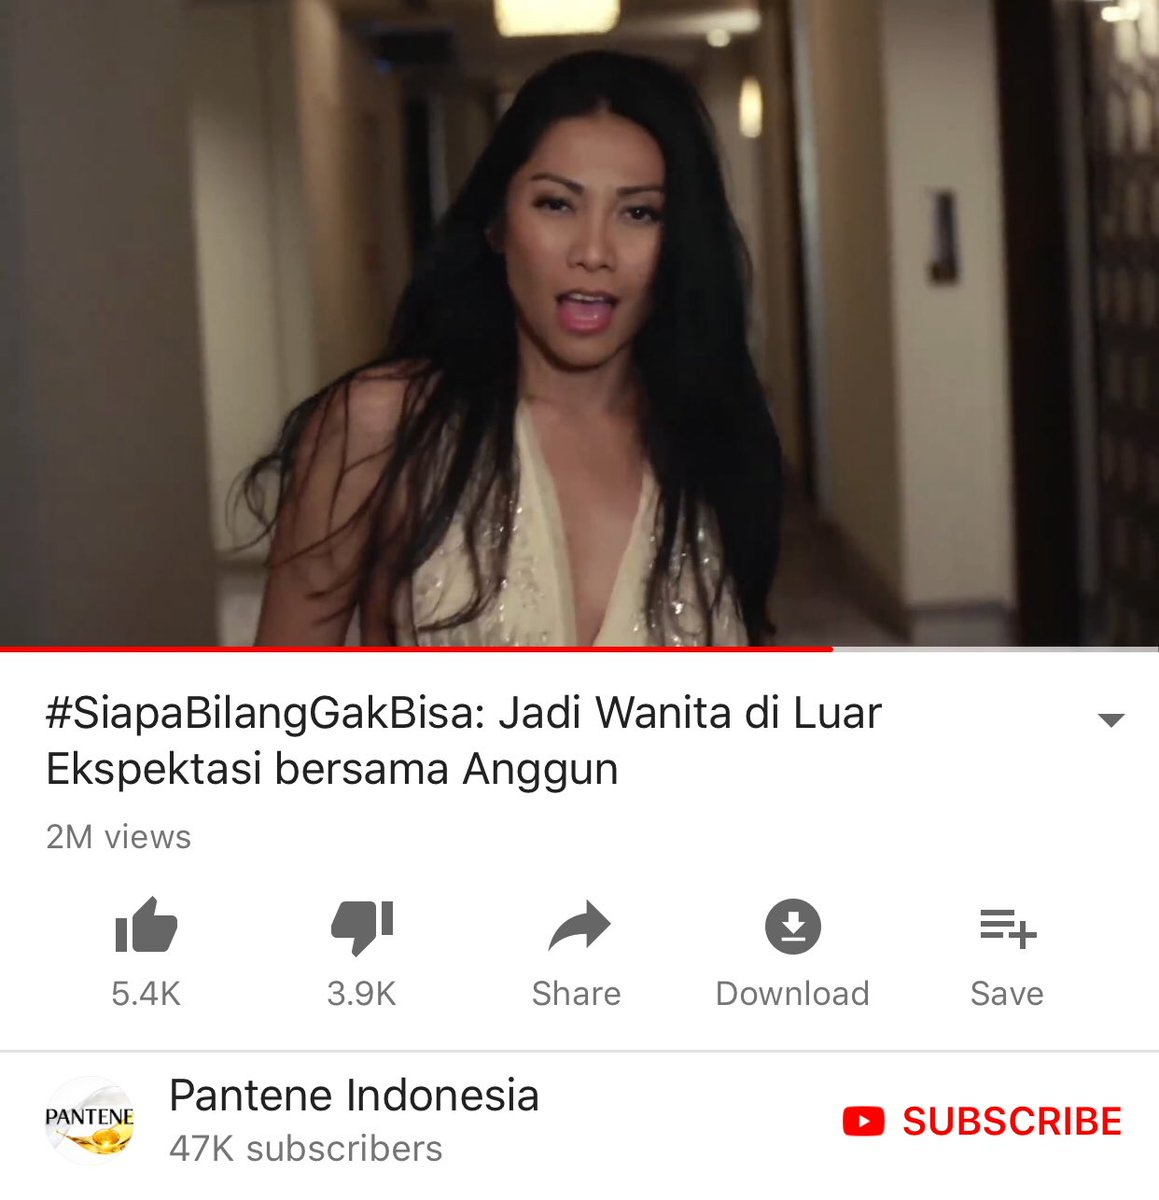 Ecstatic to learn that #SiapaBilangGakBisa the new anthem I wrote for @PanteneID campaign around #WomenEmpowerment has been viewed 2 Million times today. Thank you, terima kasih, Merci 🙏🏽💝